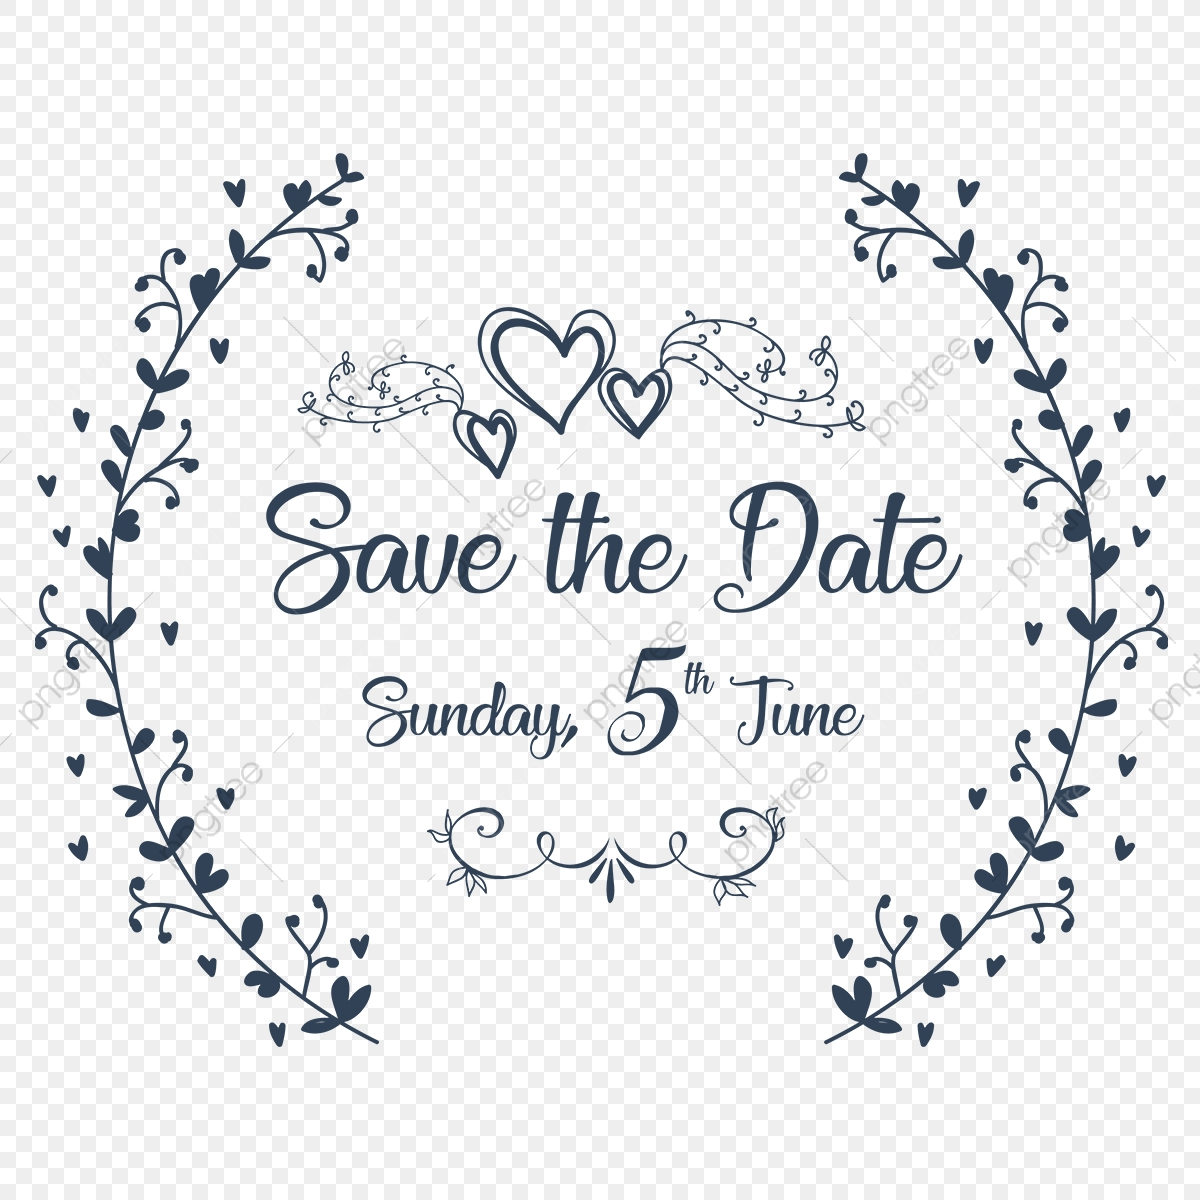 Save The Date Invitation Ornaments, Save The Date.